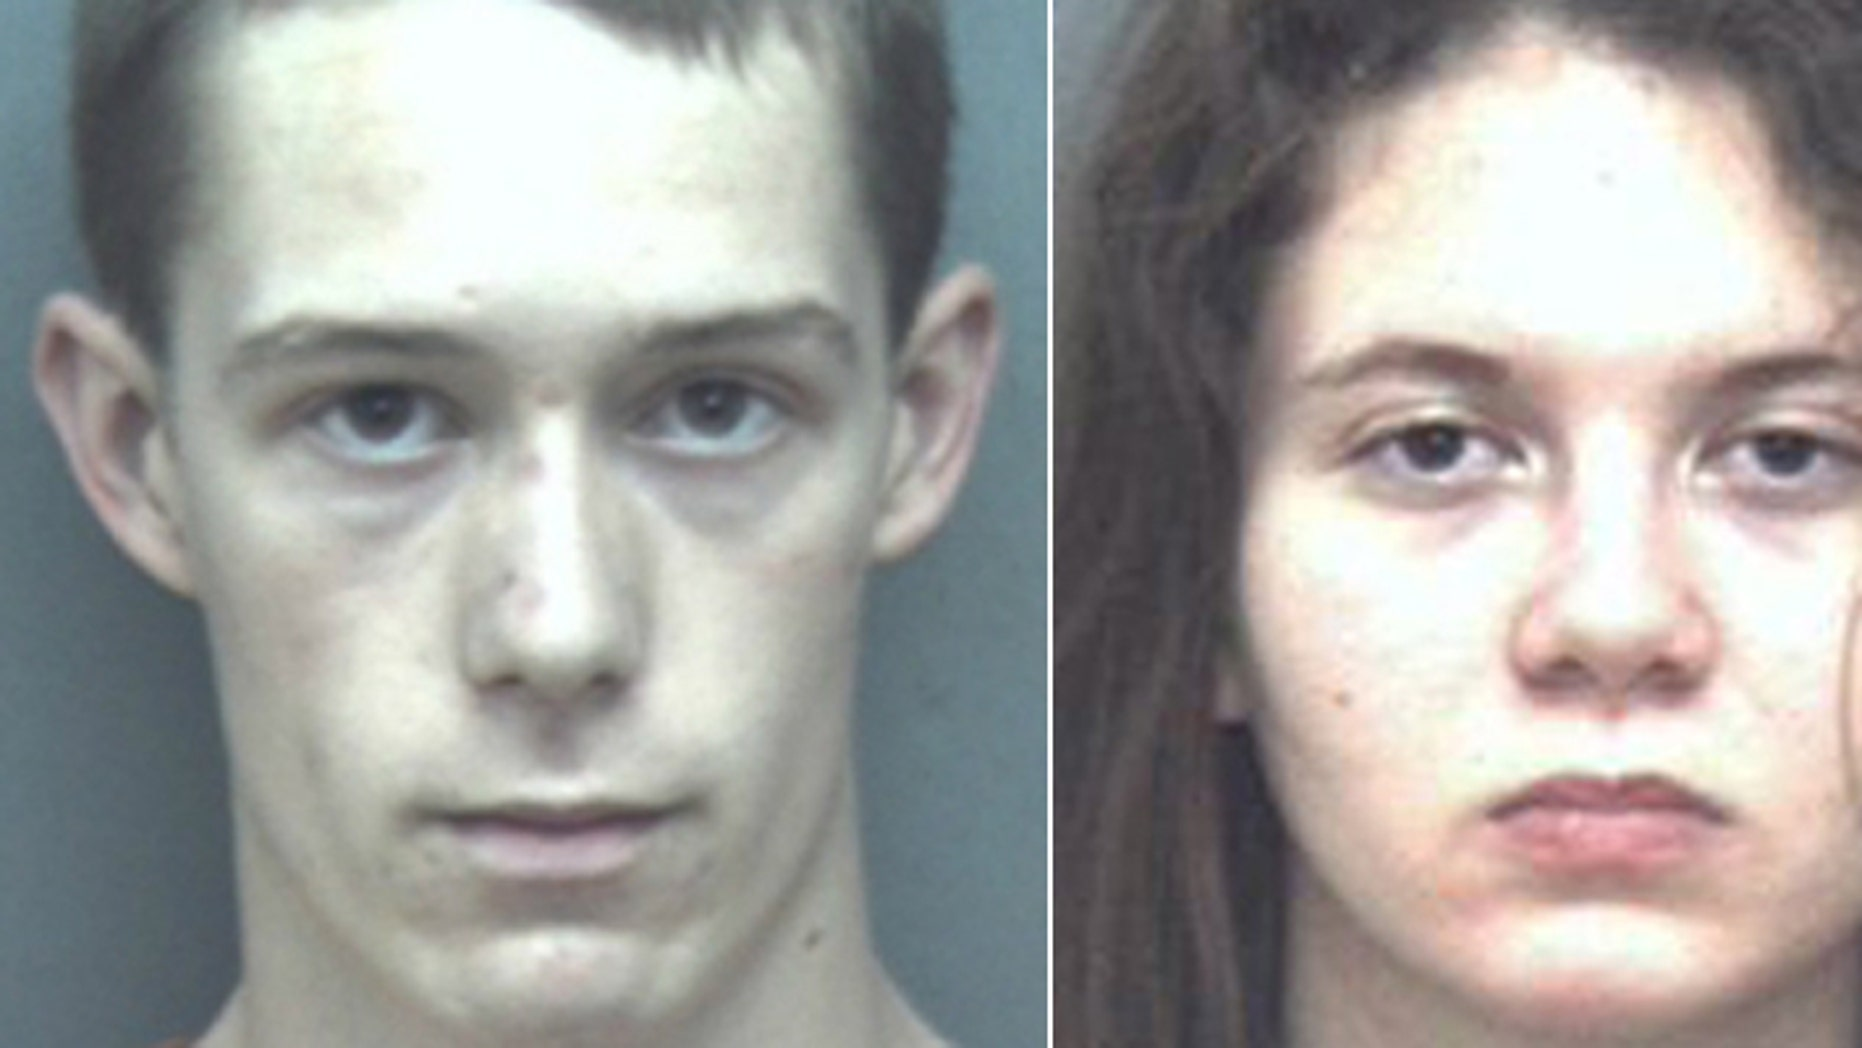 Mug shots of David Eisenhauer and Natalie Keepers, charged in the death of a Virginia teen. (Blacksburg Police Department)